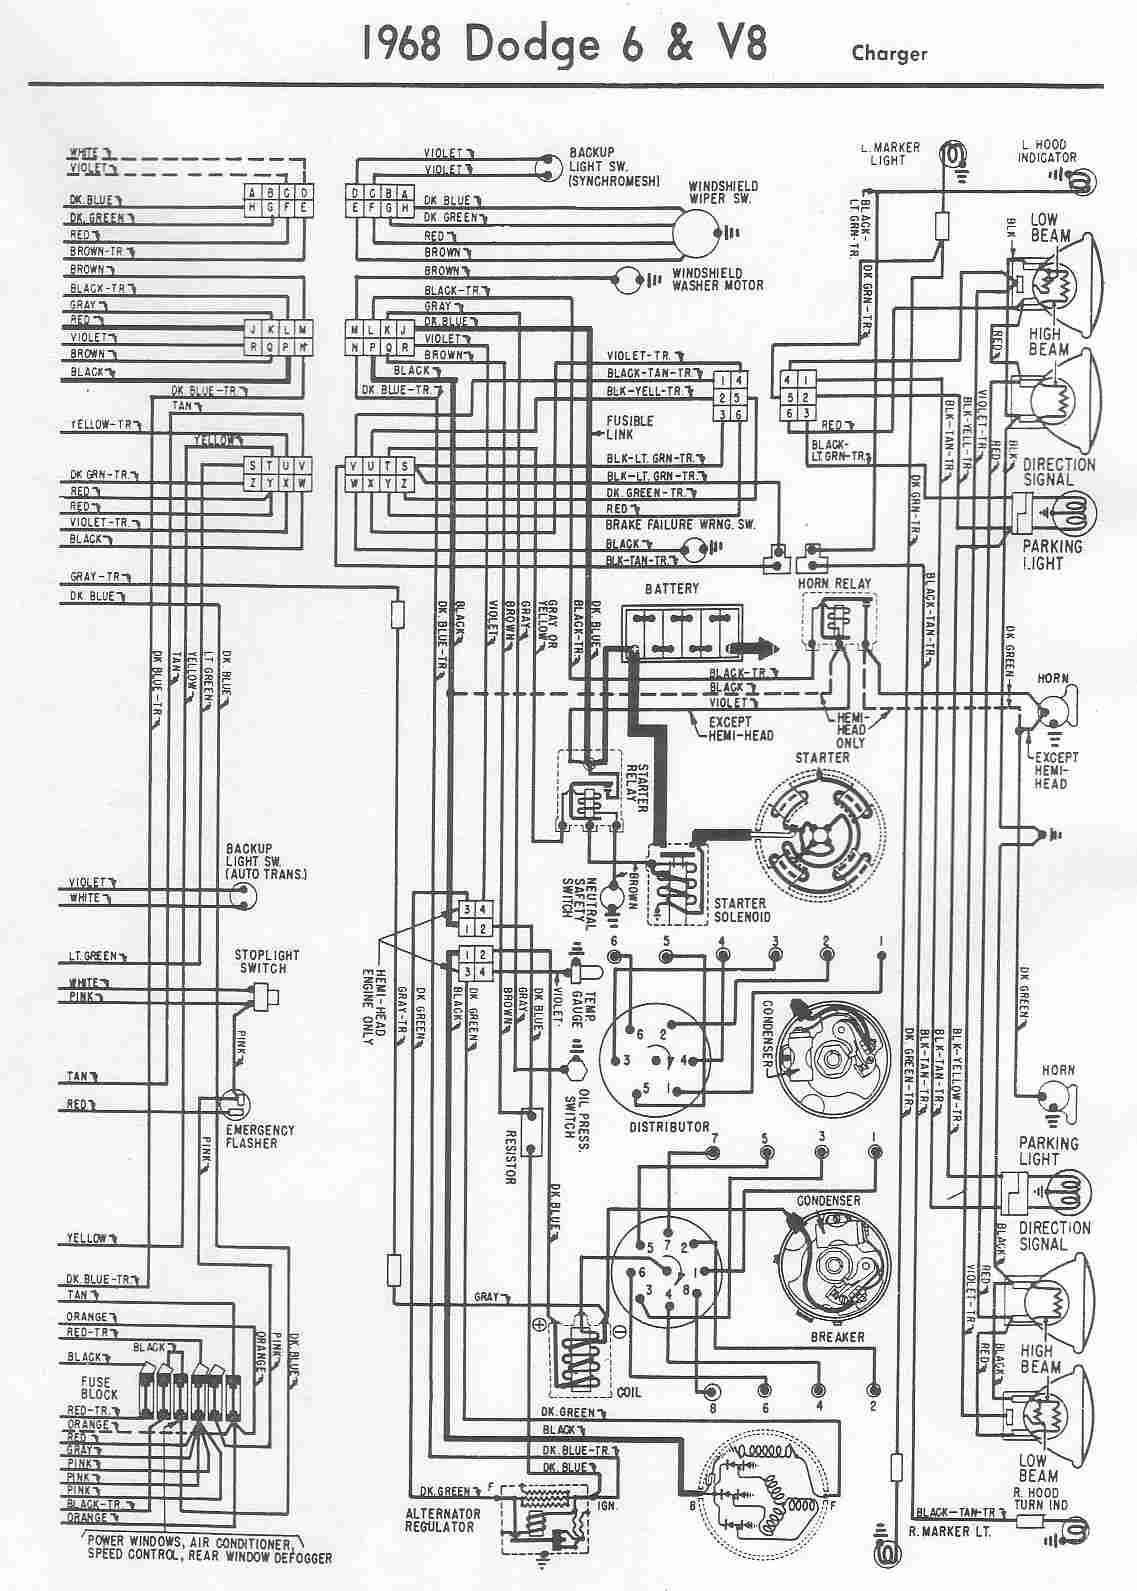 charger electrical wiring diagram of 1968 dodge 6 and v8?t=1508404771 dodge car manuals, wiring diagrams pdf & fault codes 1970 dodge coronet wiring diagram at beritabola.co